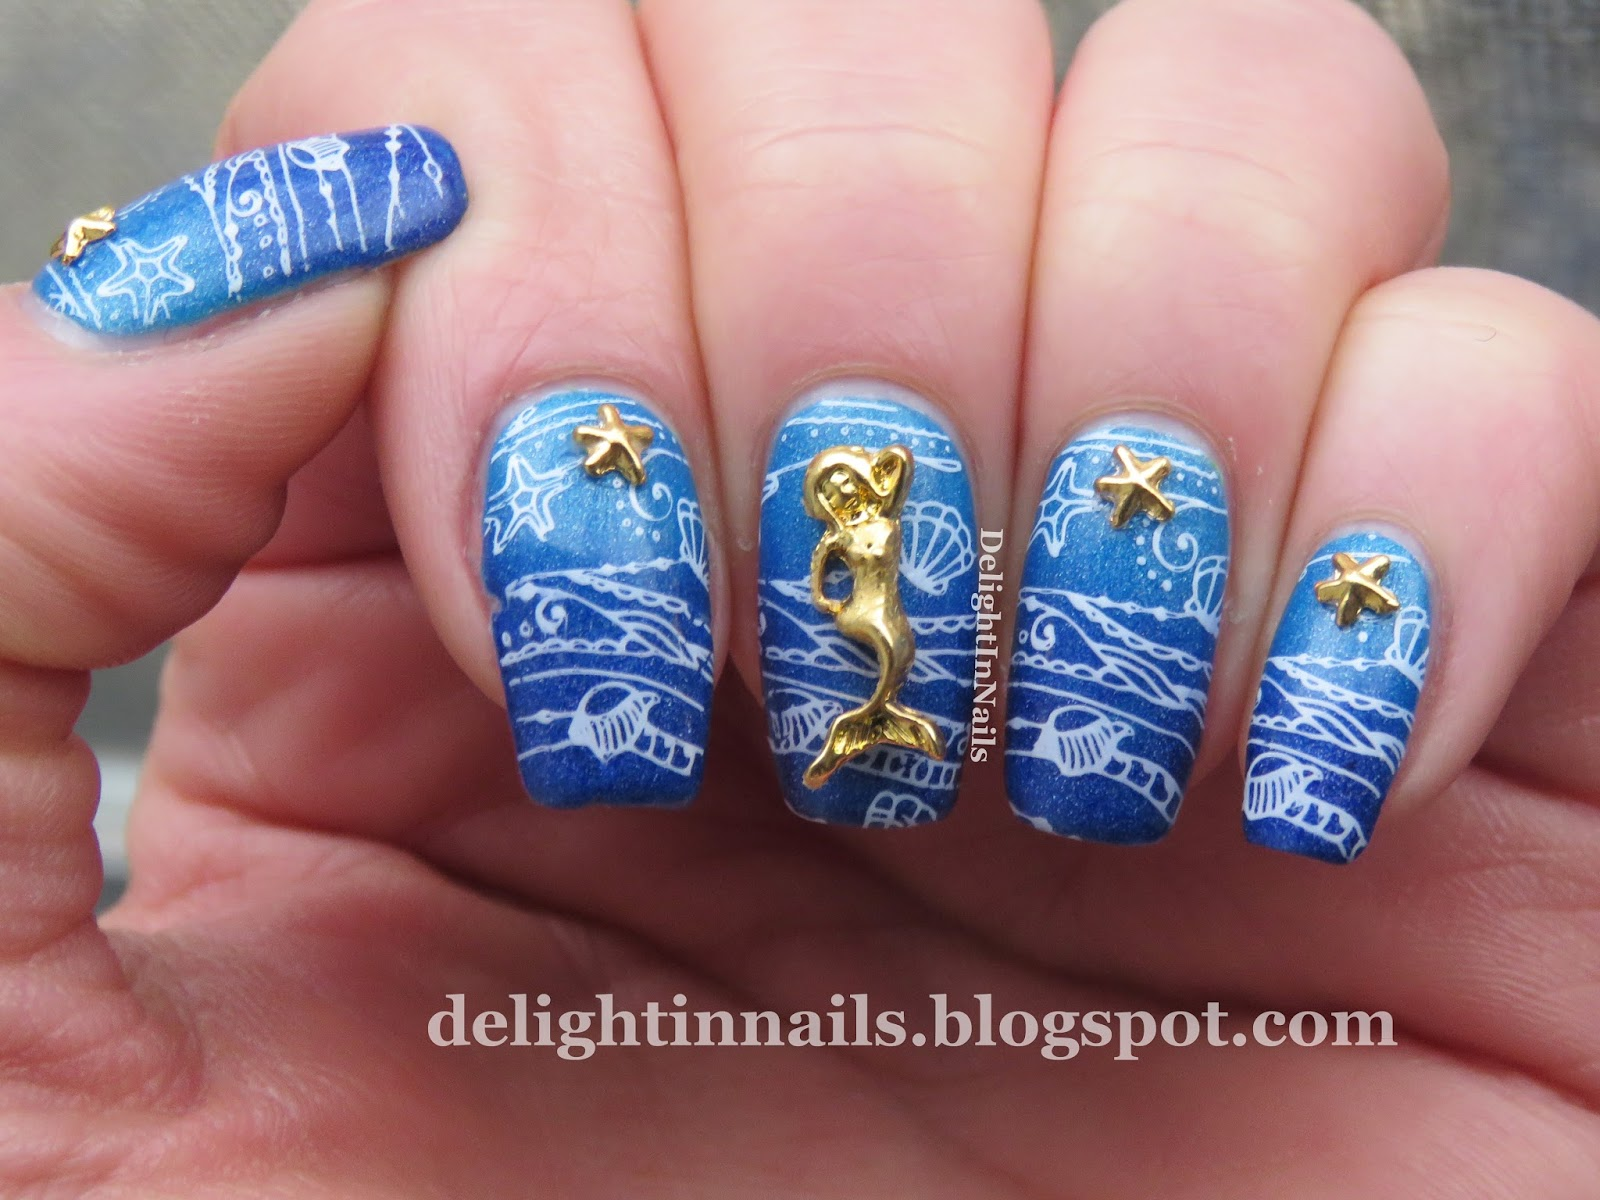 Delight In Nails: LadyQueen Nail Charms Review